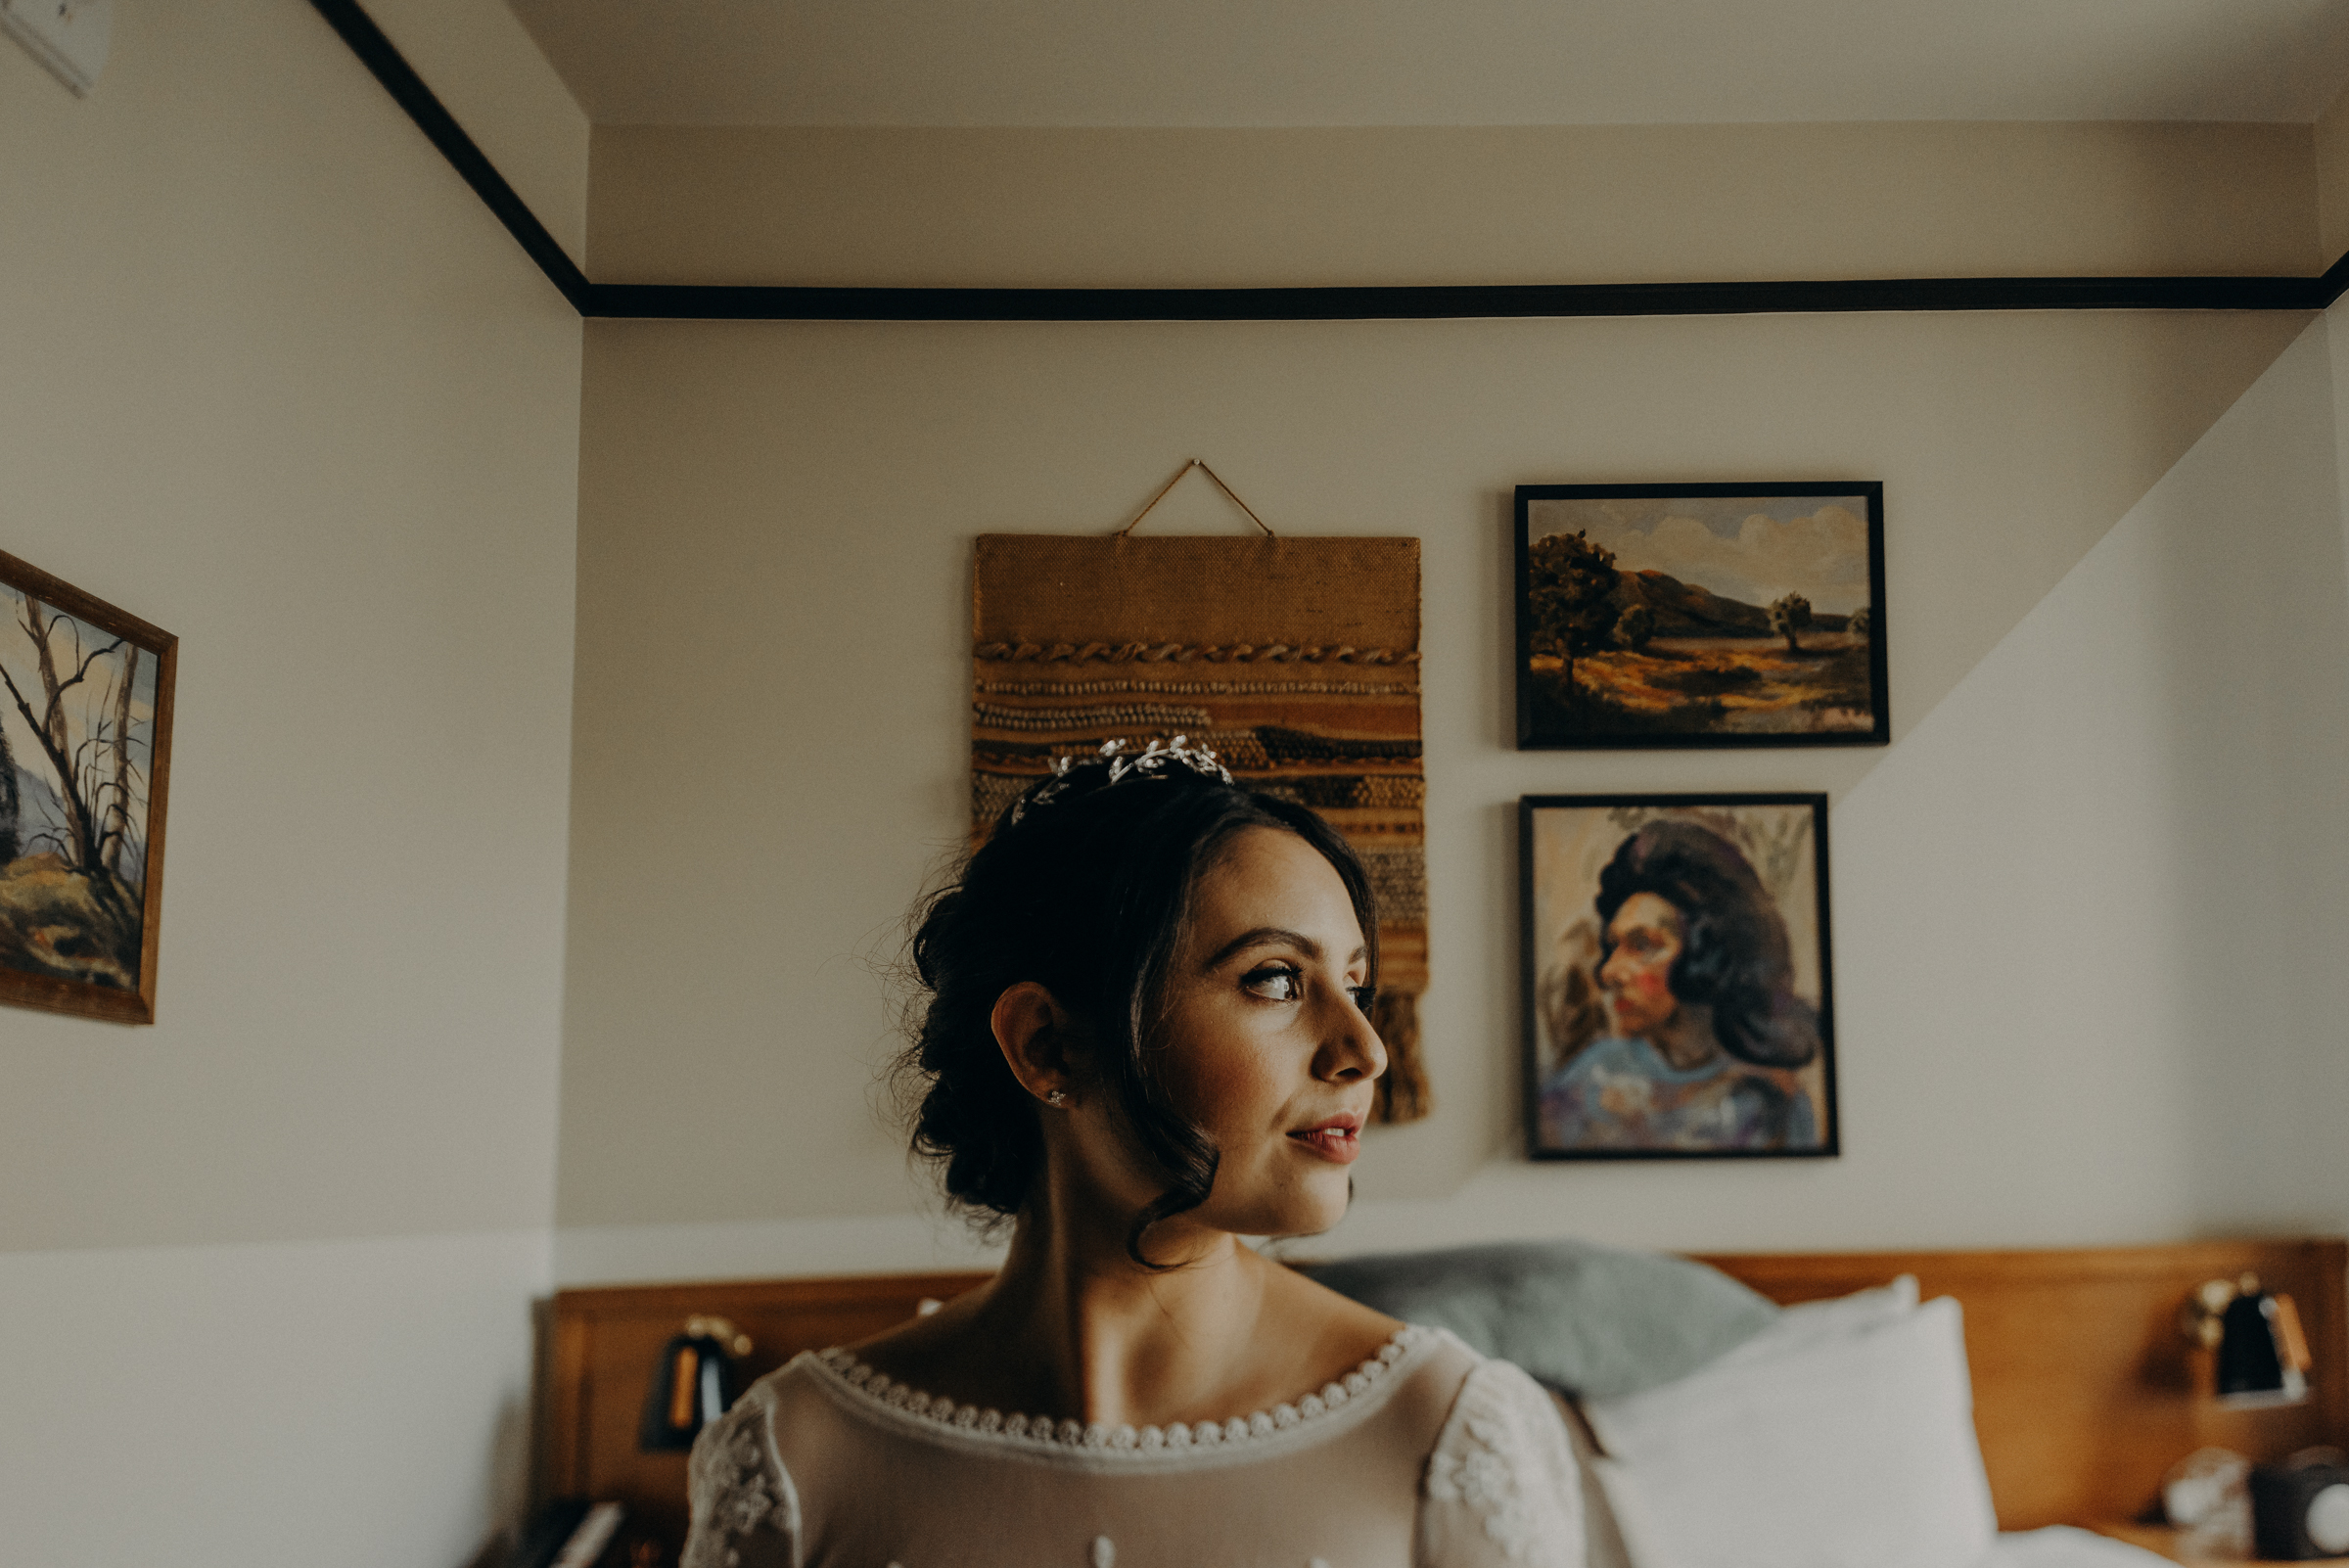 Isaiah + Taylor Photography - The Unique Space Wedding, Los Angeles Wedding Photography 021.jpg